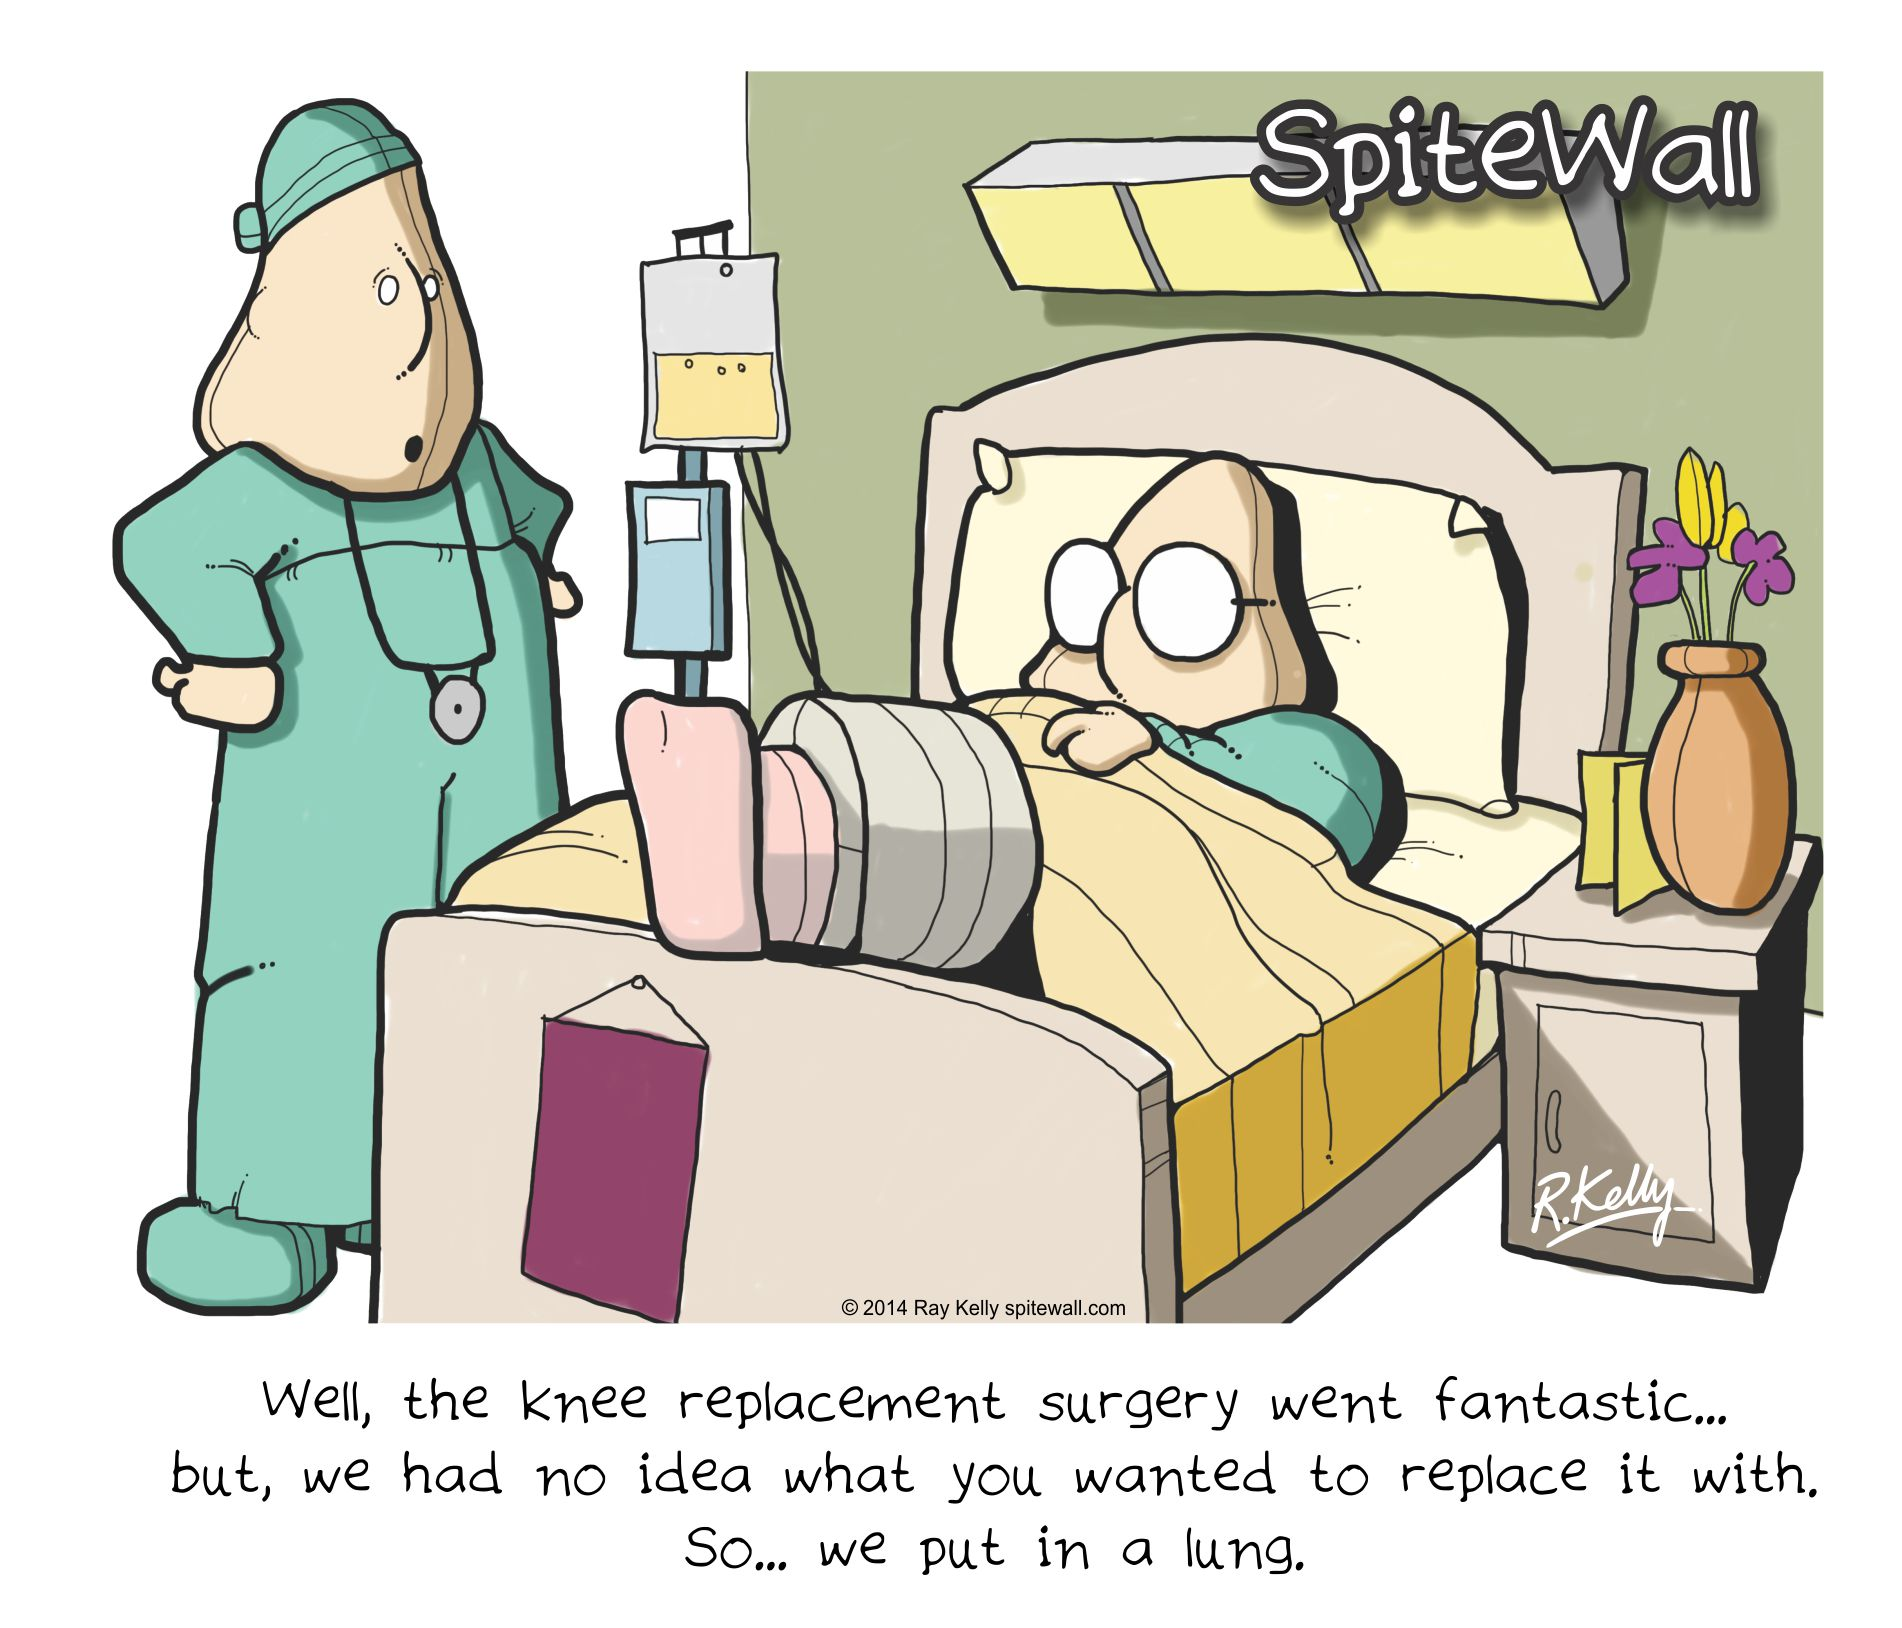 Surgical cartoons surgical cartoon funny surgical picture surgical - This Is Funny Lol But Really Dr L Please Take Care Of My Hubby Hubby Pinterest